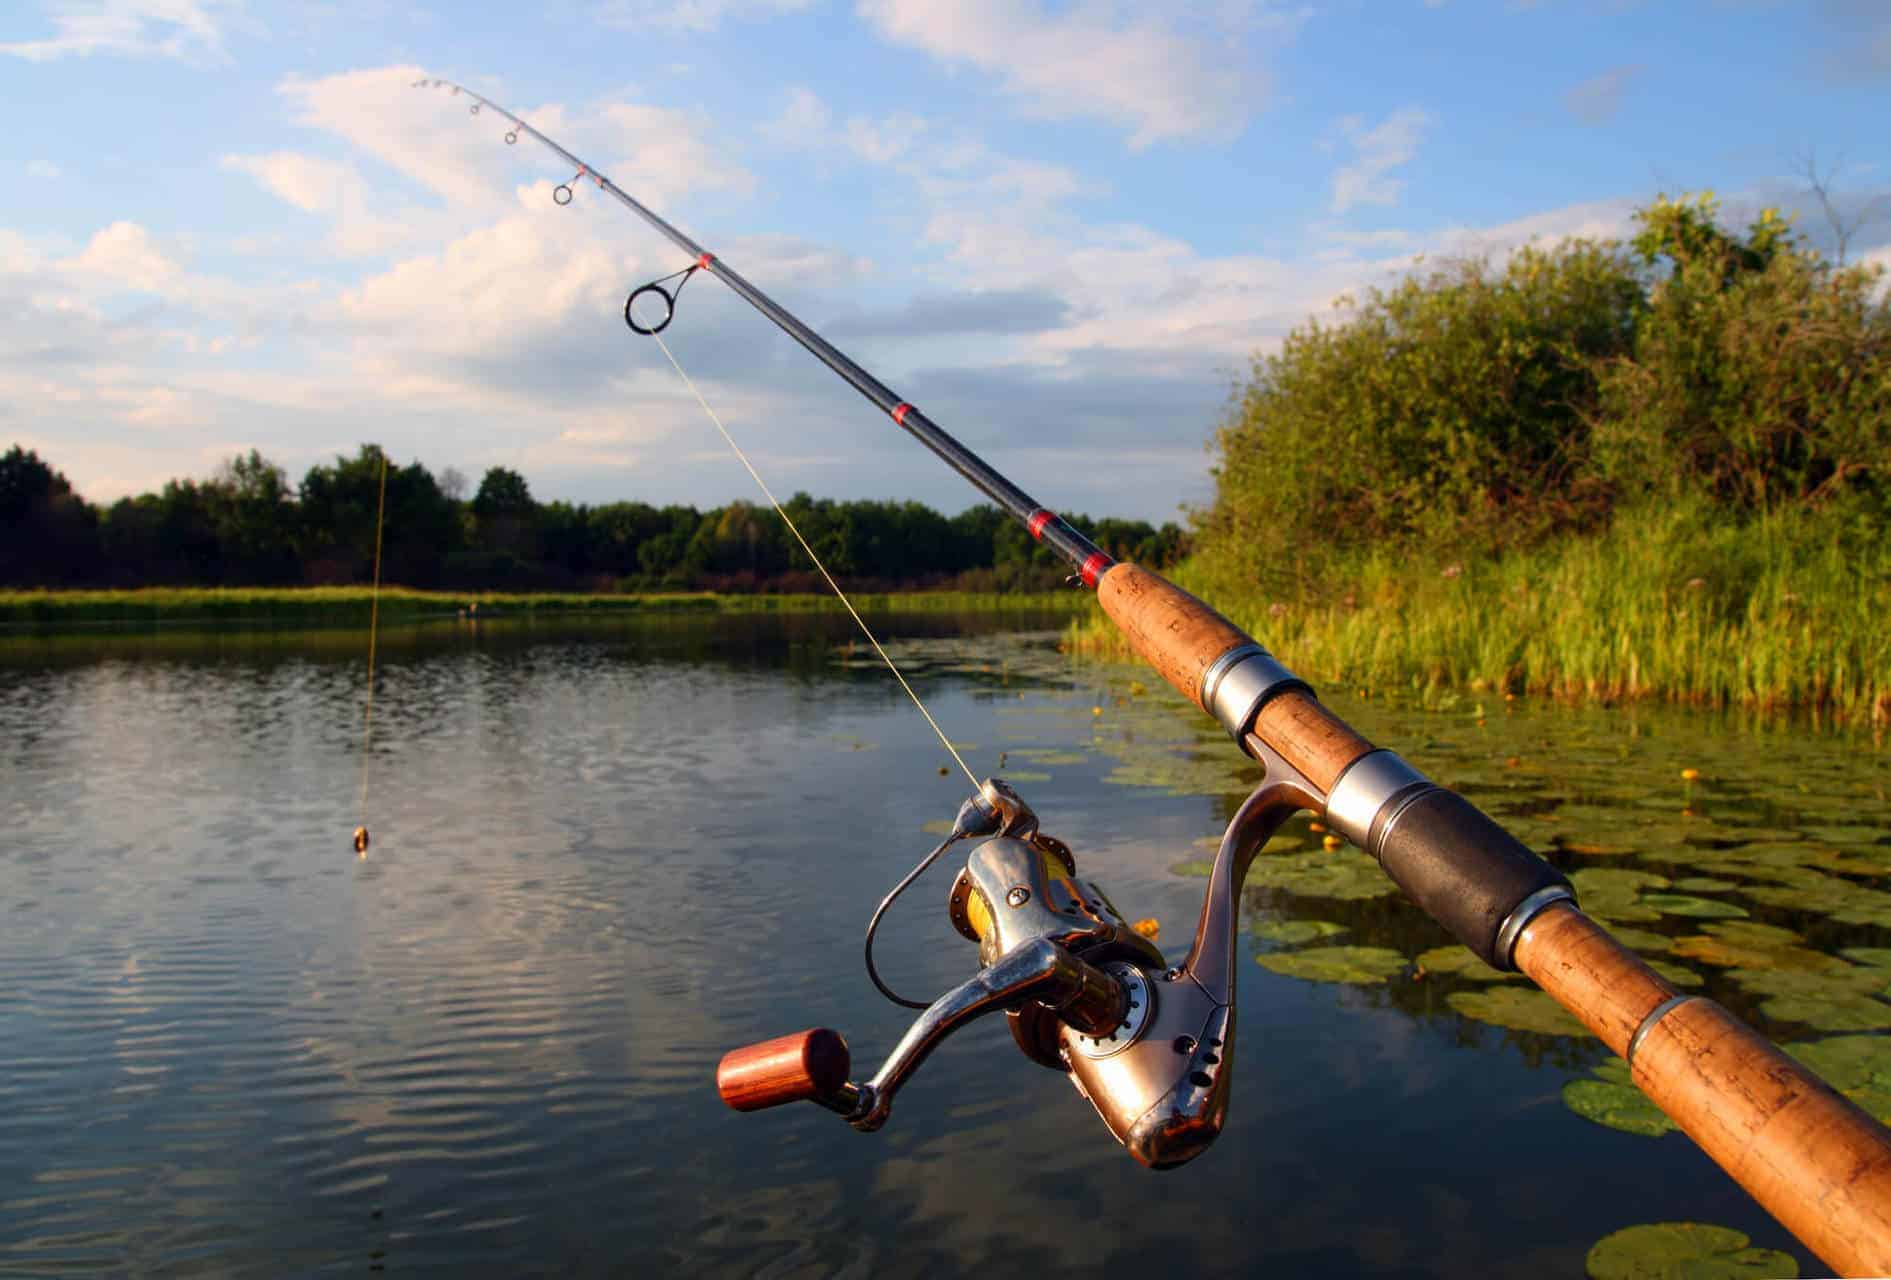 Different Types of Fishing Rods - 8 different types of rods